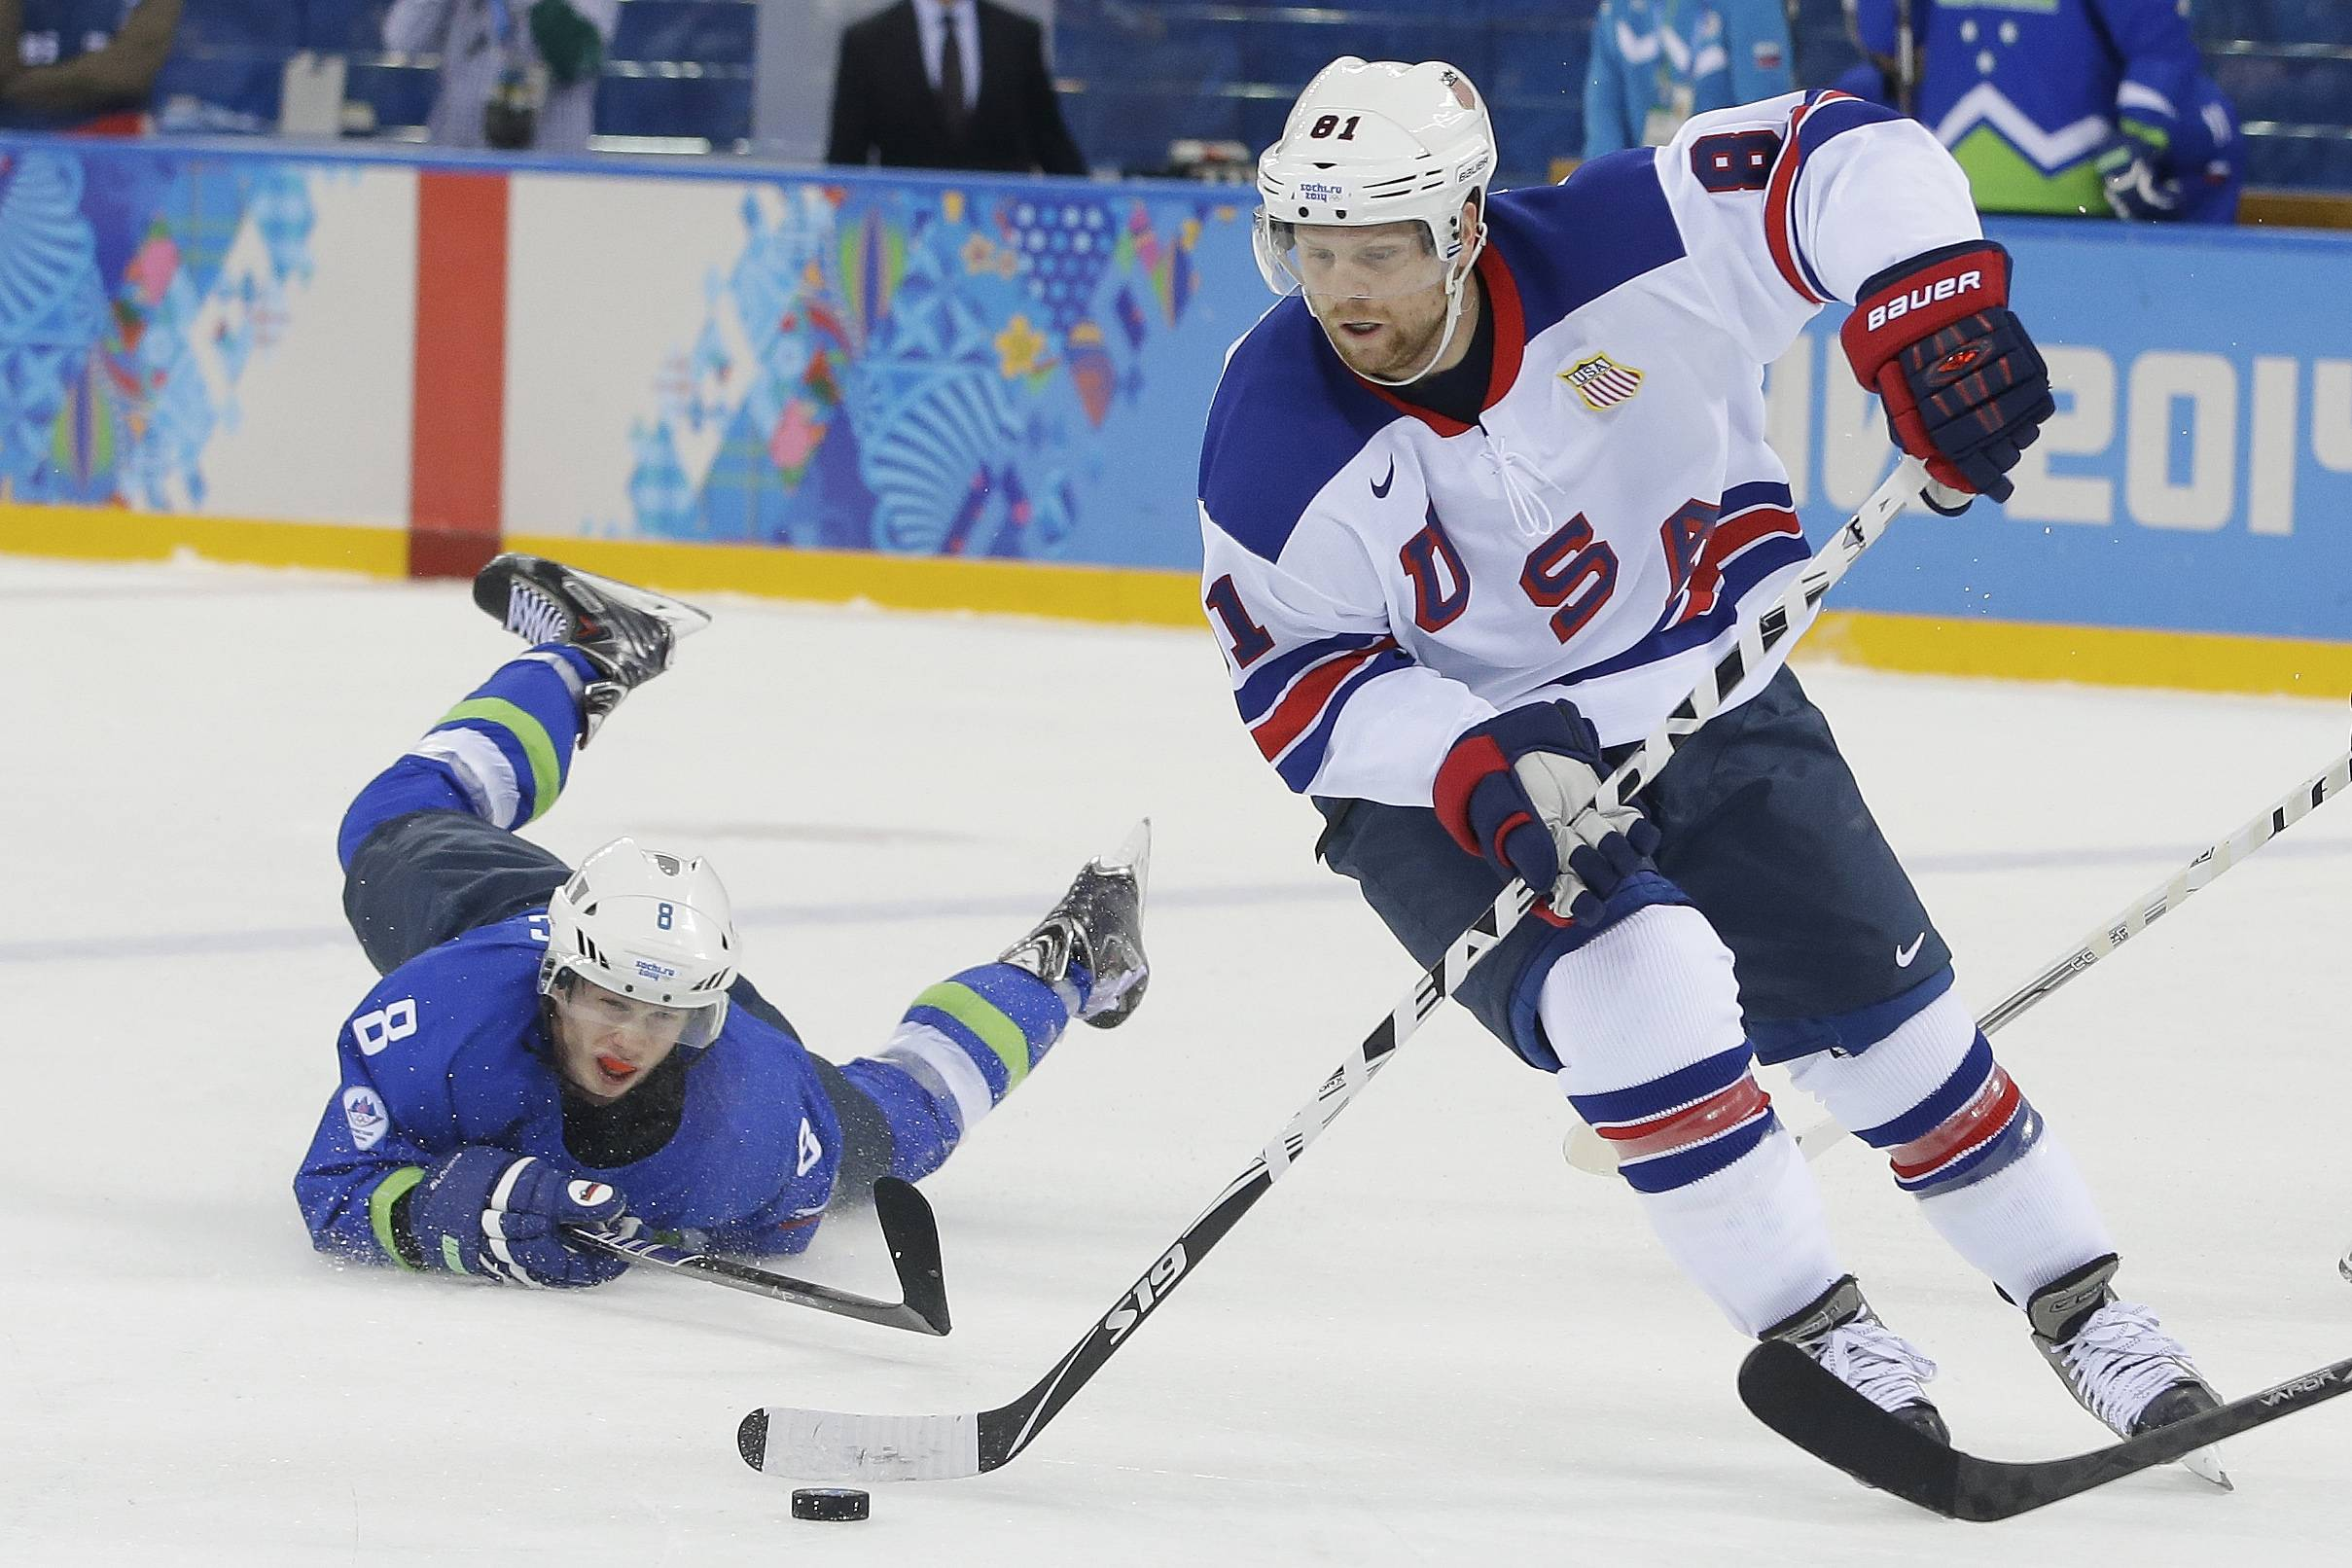 USA forward Phil Kessel take the puck away from Slovenia forward Ziga Jeglic during the 2014 Winter Olympics men's ice hockey game at Shayba Arena Sunday, Feb. 16, 2014, in Sochi, Russia.